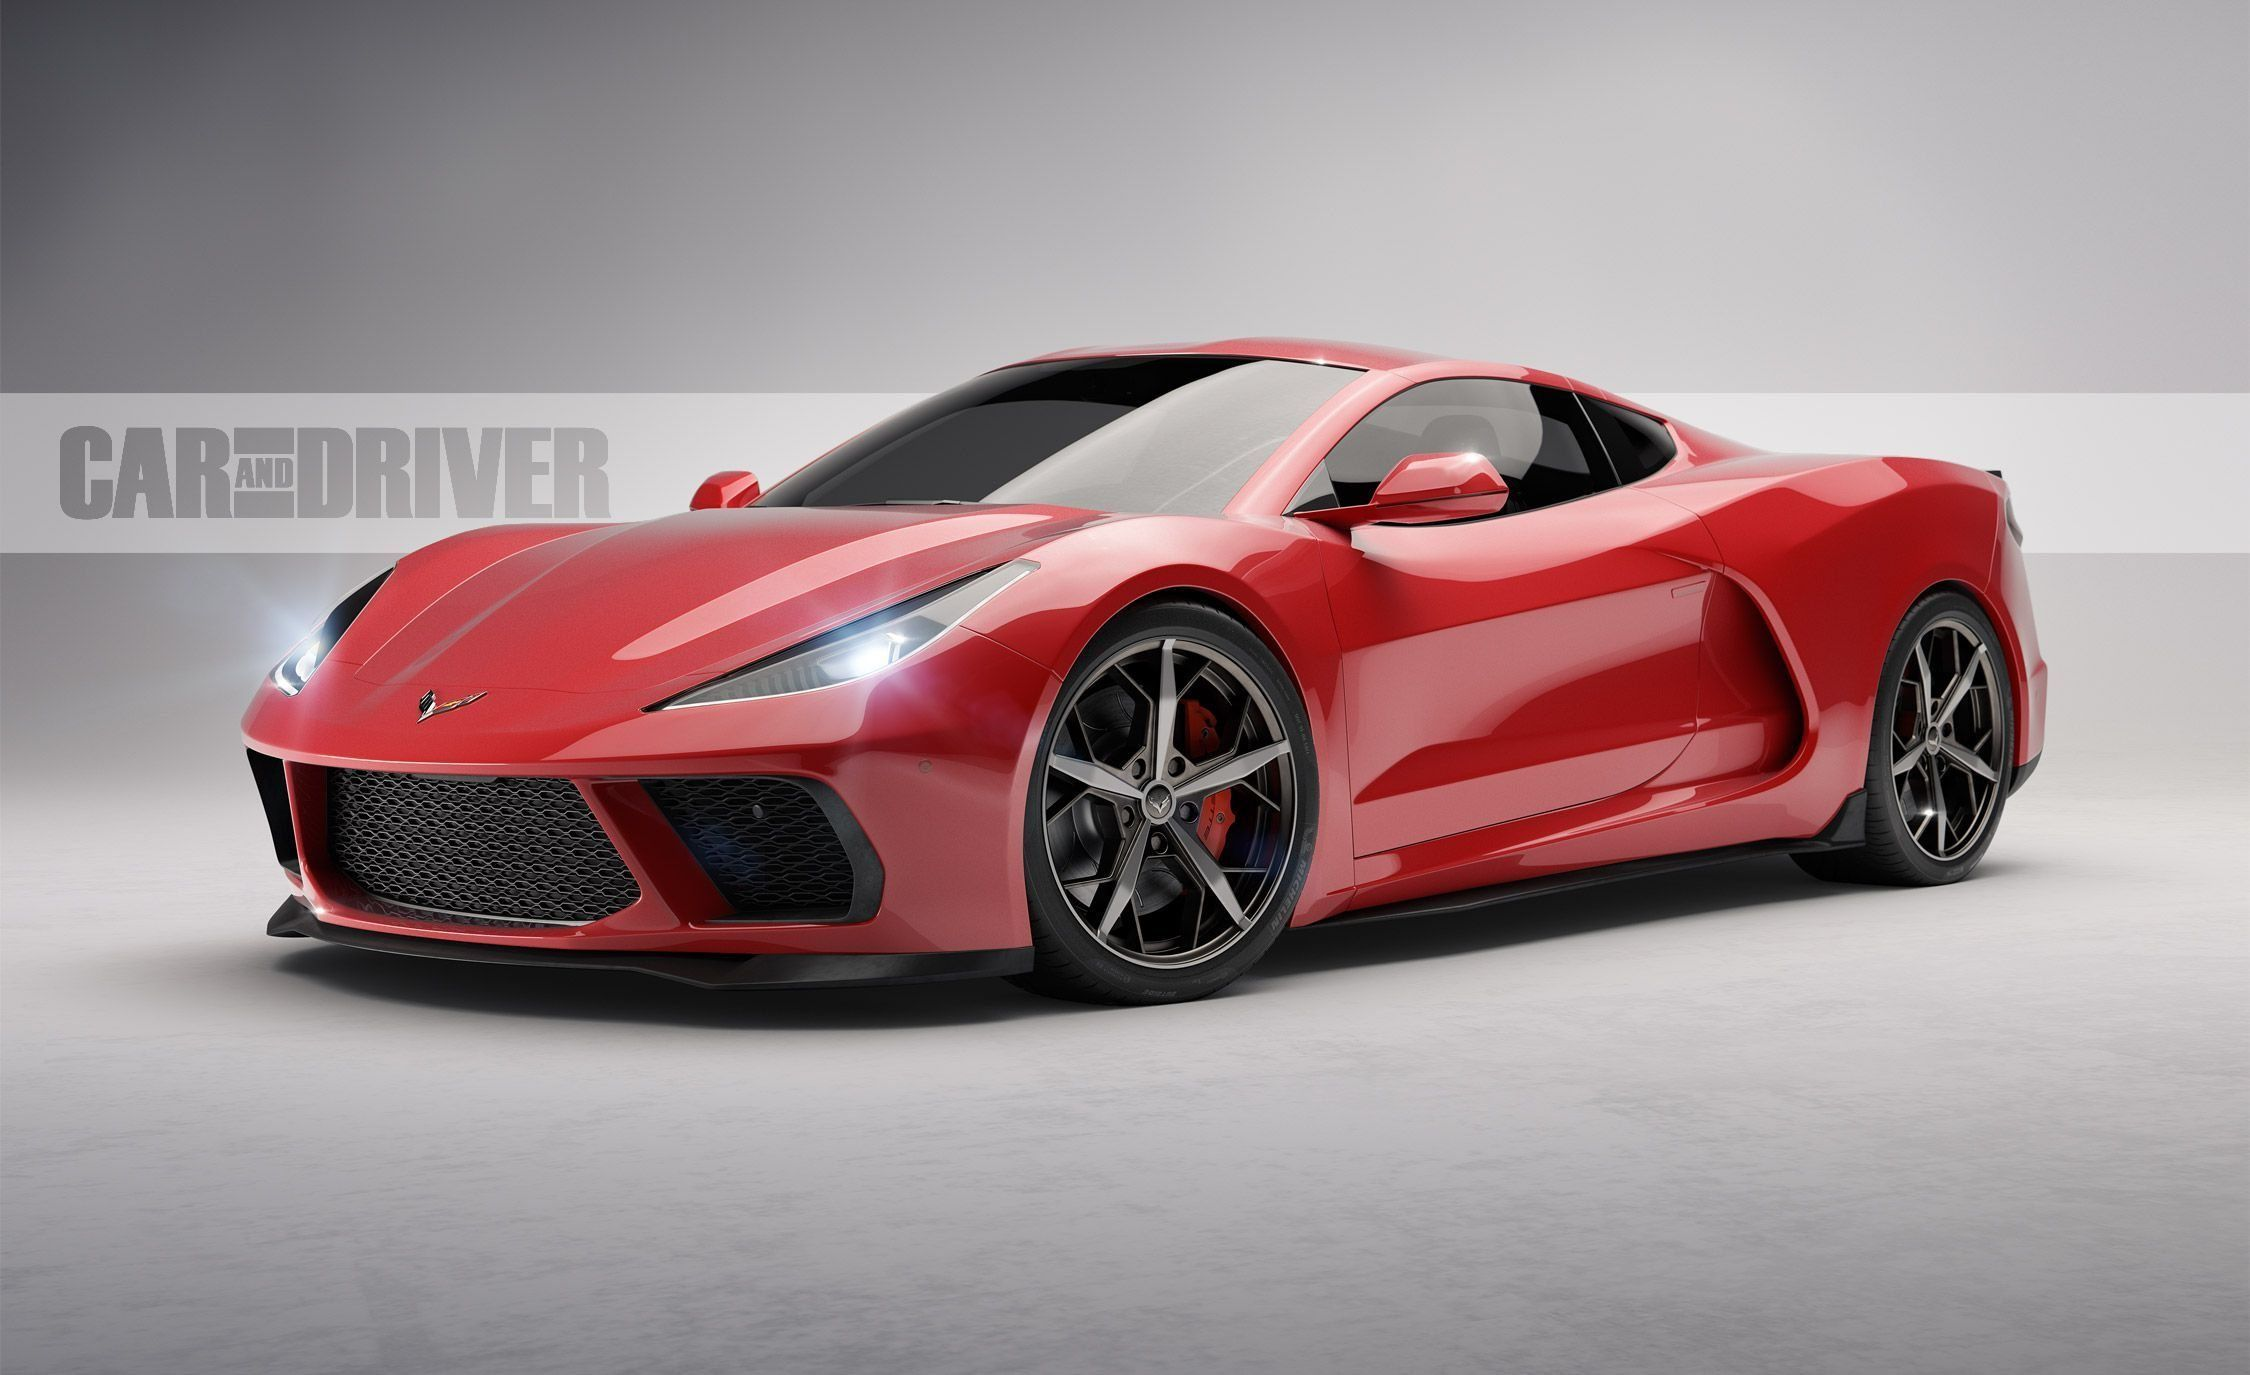 2021 Chevy Corvette Zora Zr1 Wallpaper In 2020 Chevrolet